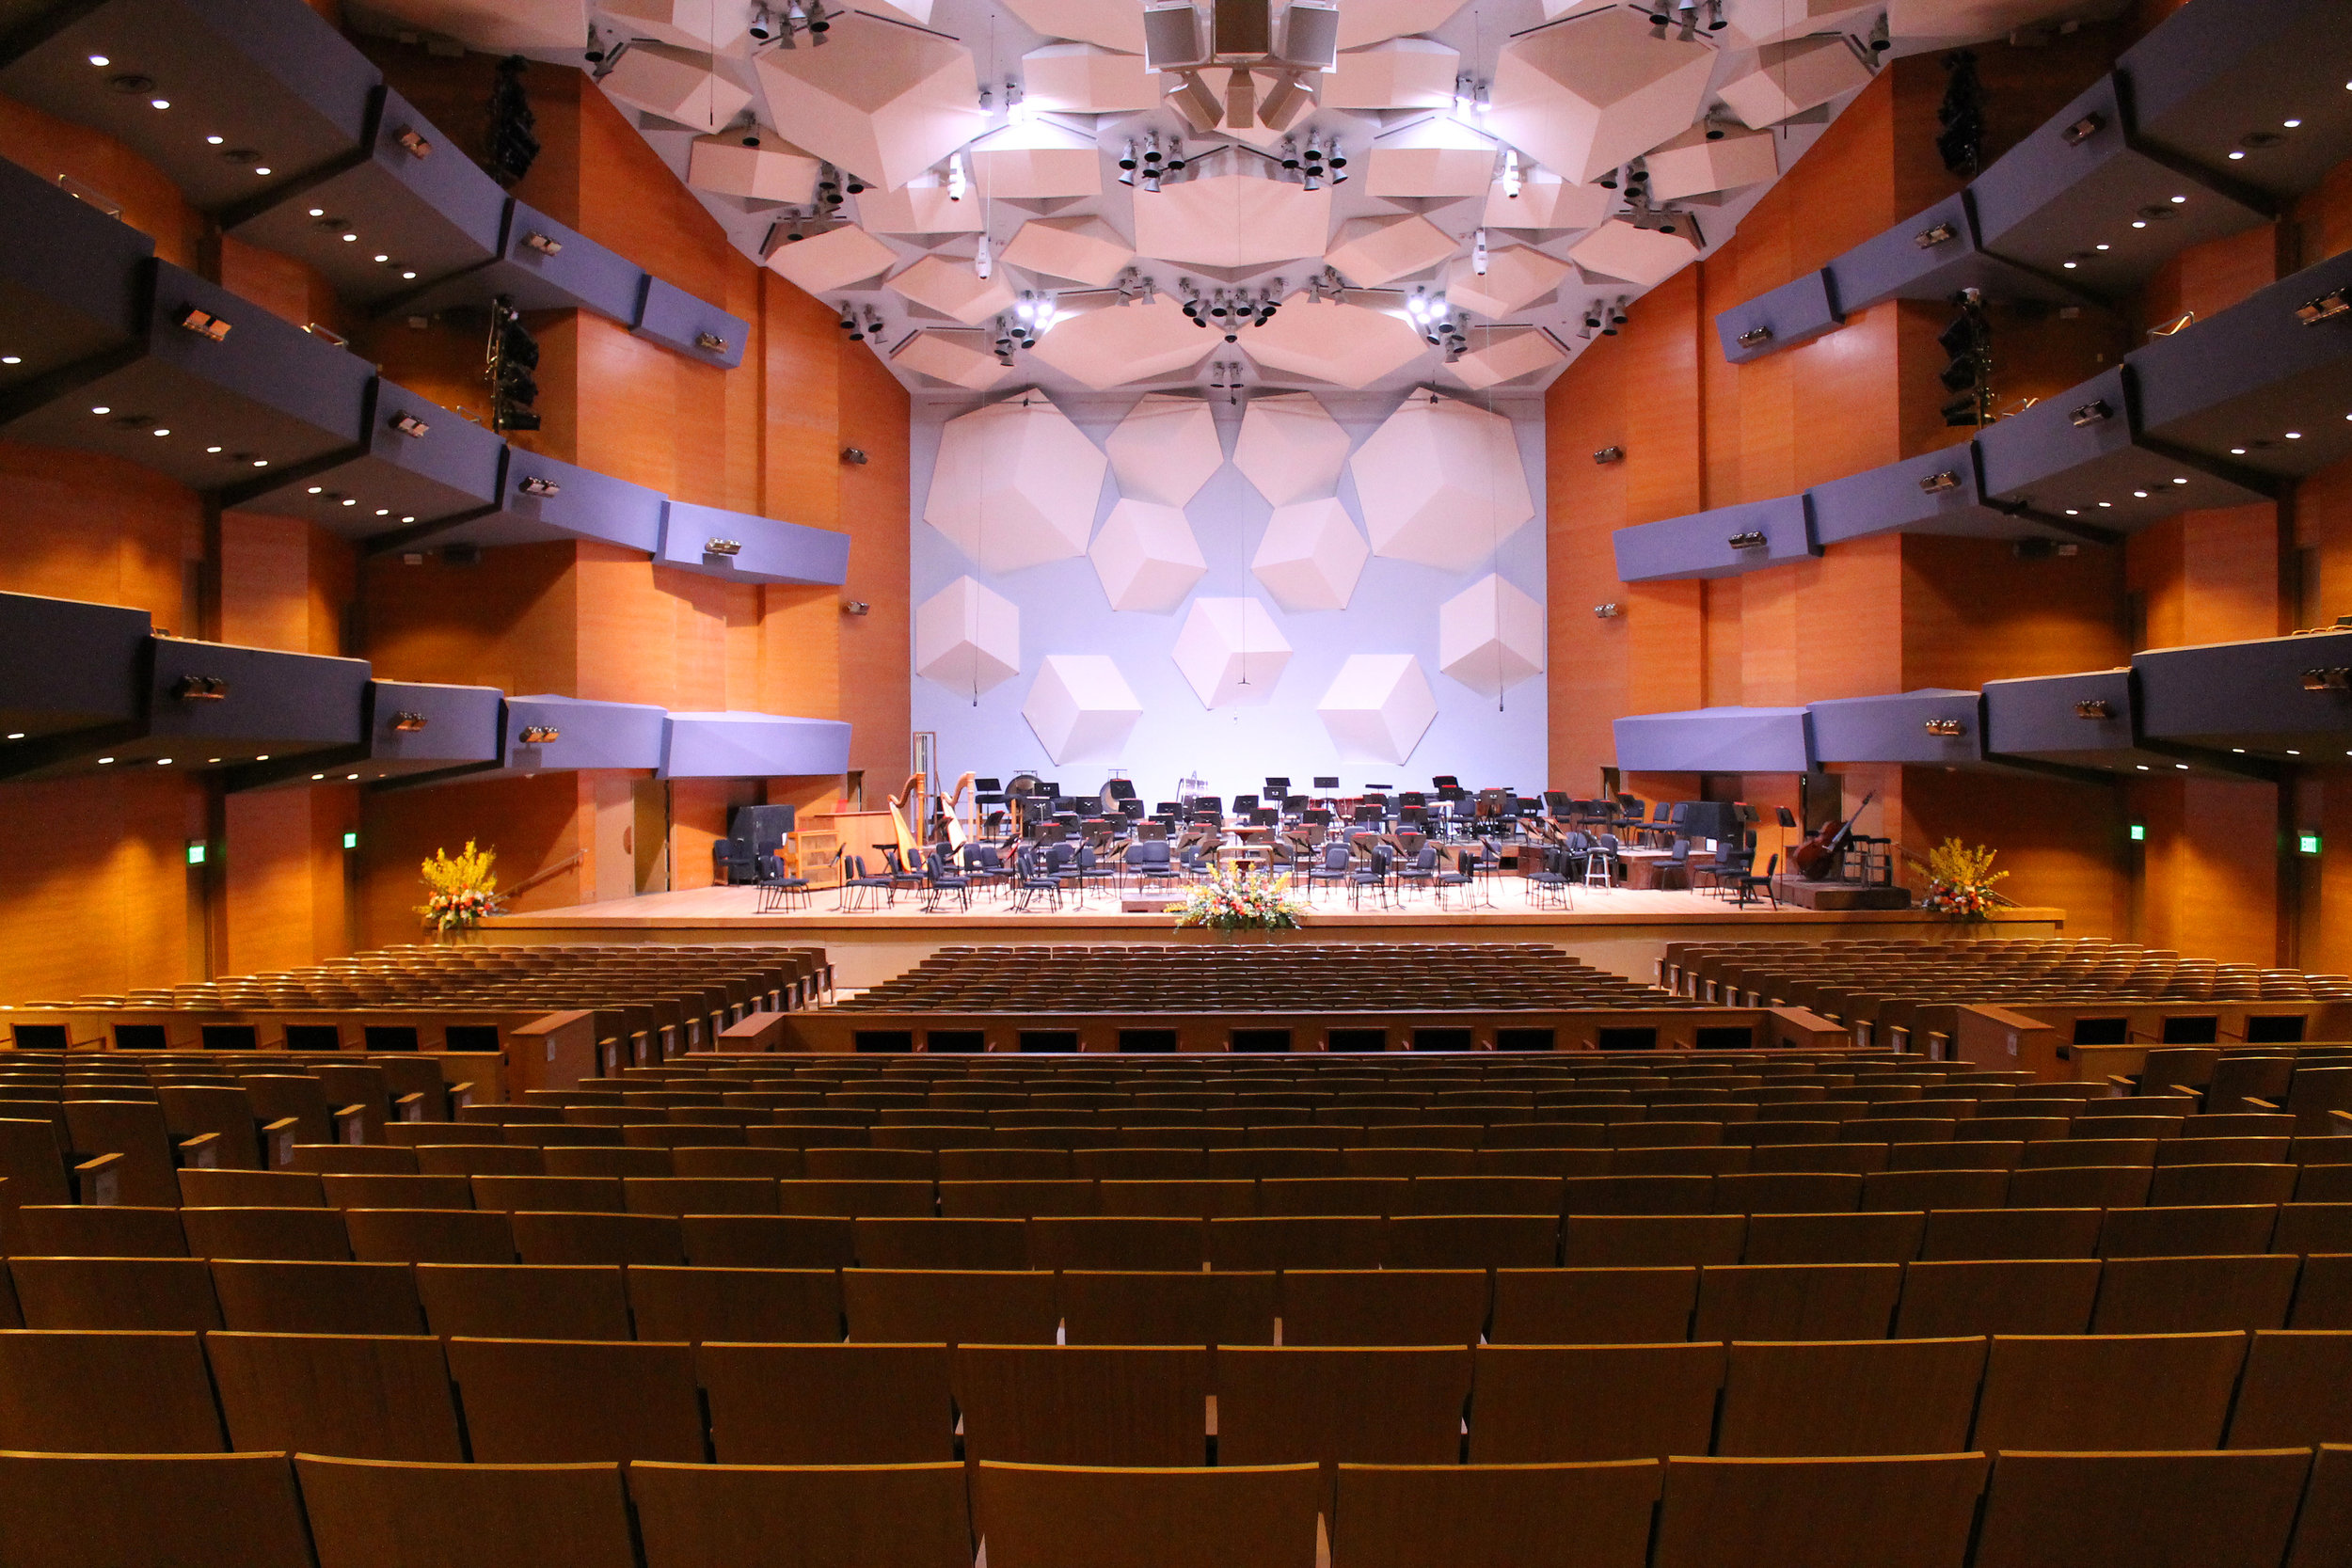 Orchestra Hall - Home of the Grammy Award-winning Minnesota Orchestra, Orchestra Hall is one of Minnesota's great cultural touchstones. Built in 1974 and renovated in 2014, the Hall is known for modern design and acoustical brilliance. Explore all corners of this exceptional music-making site in the heart of downtown!